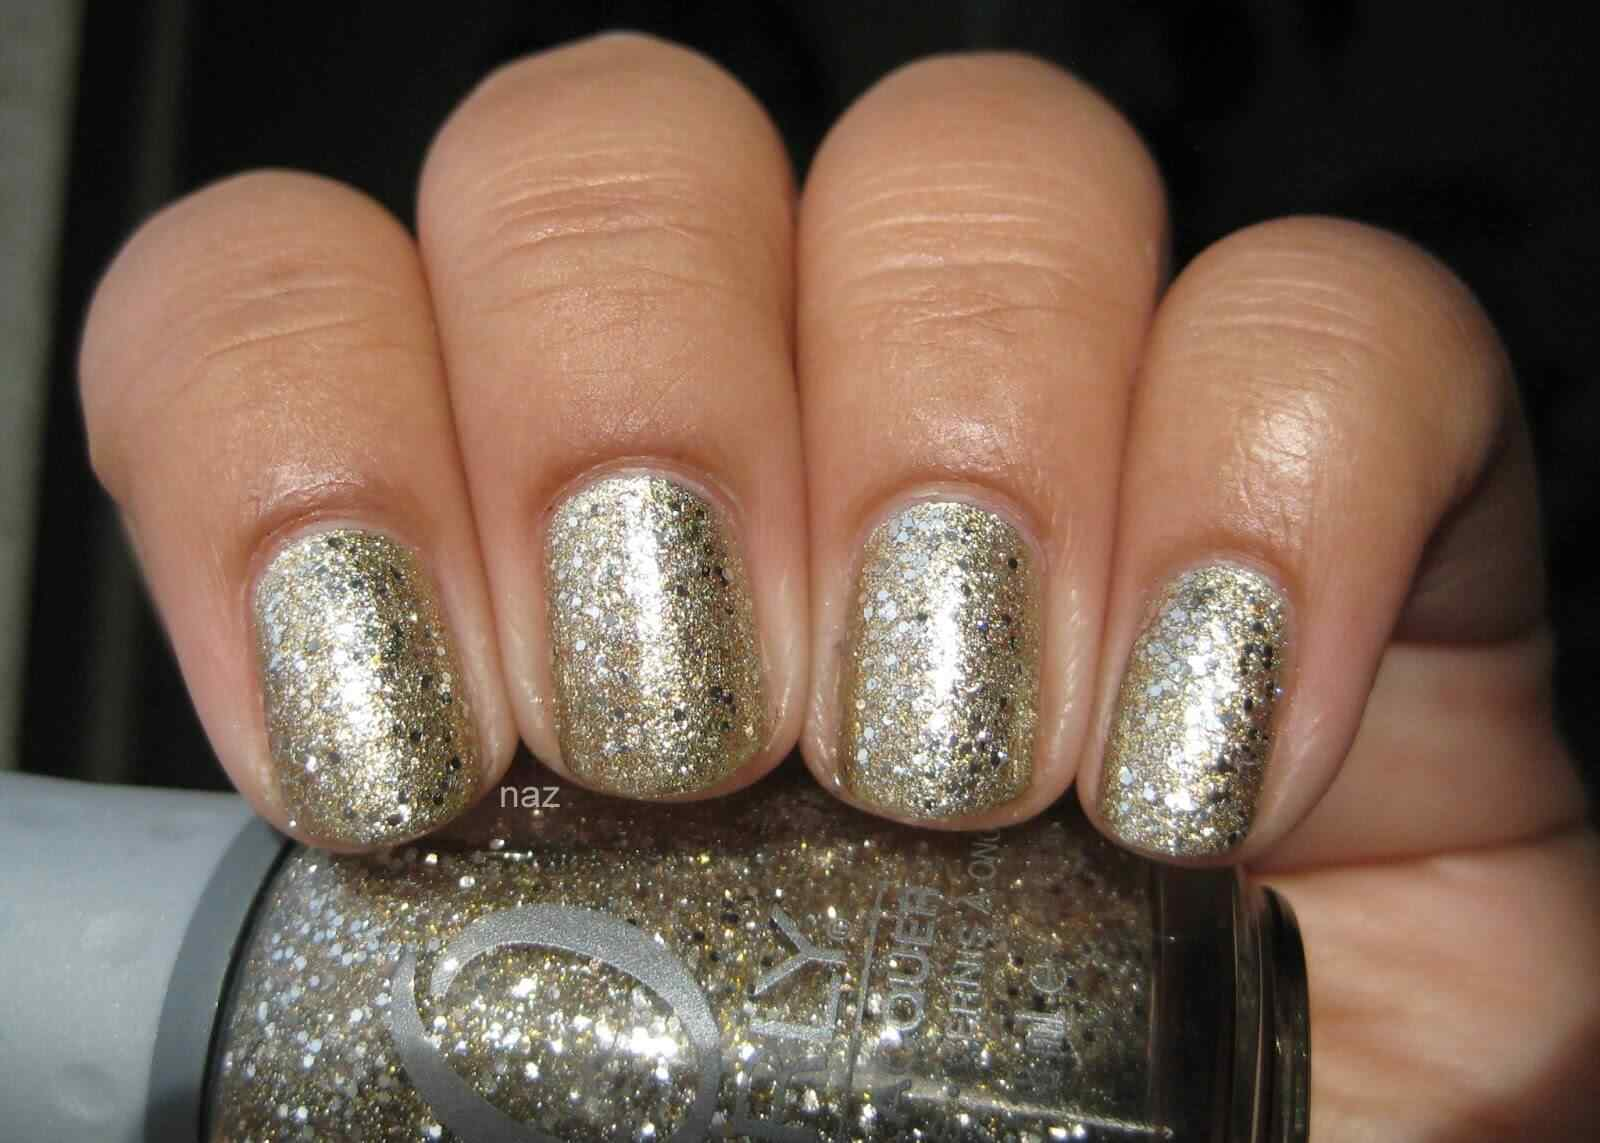 orly luxe orly halo2